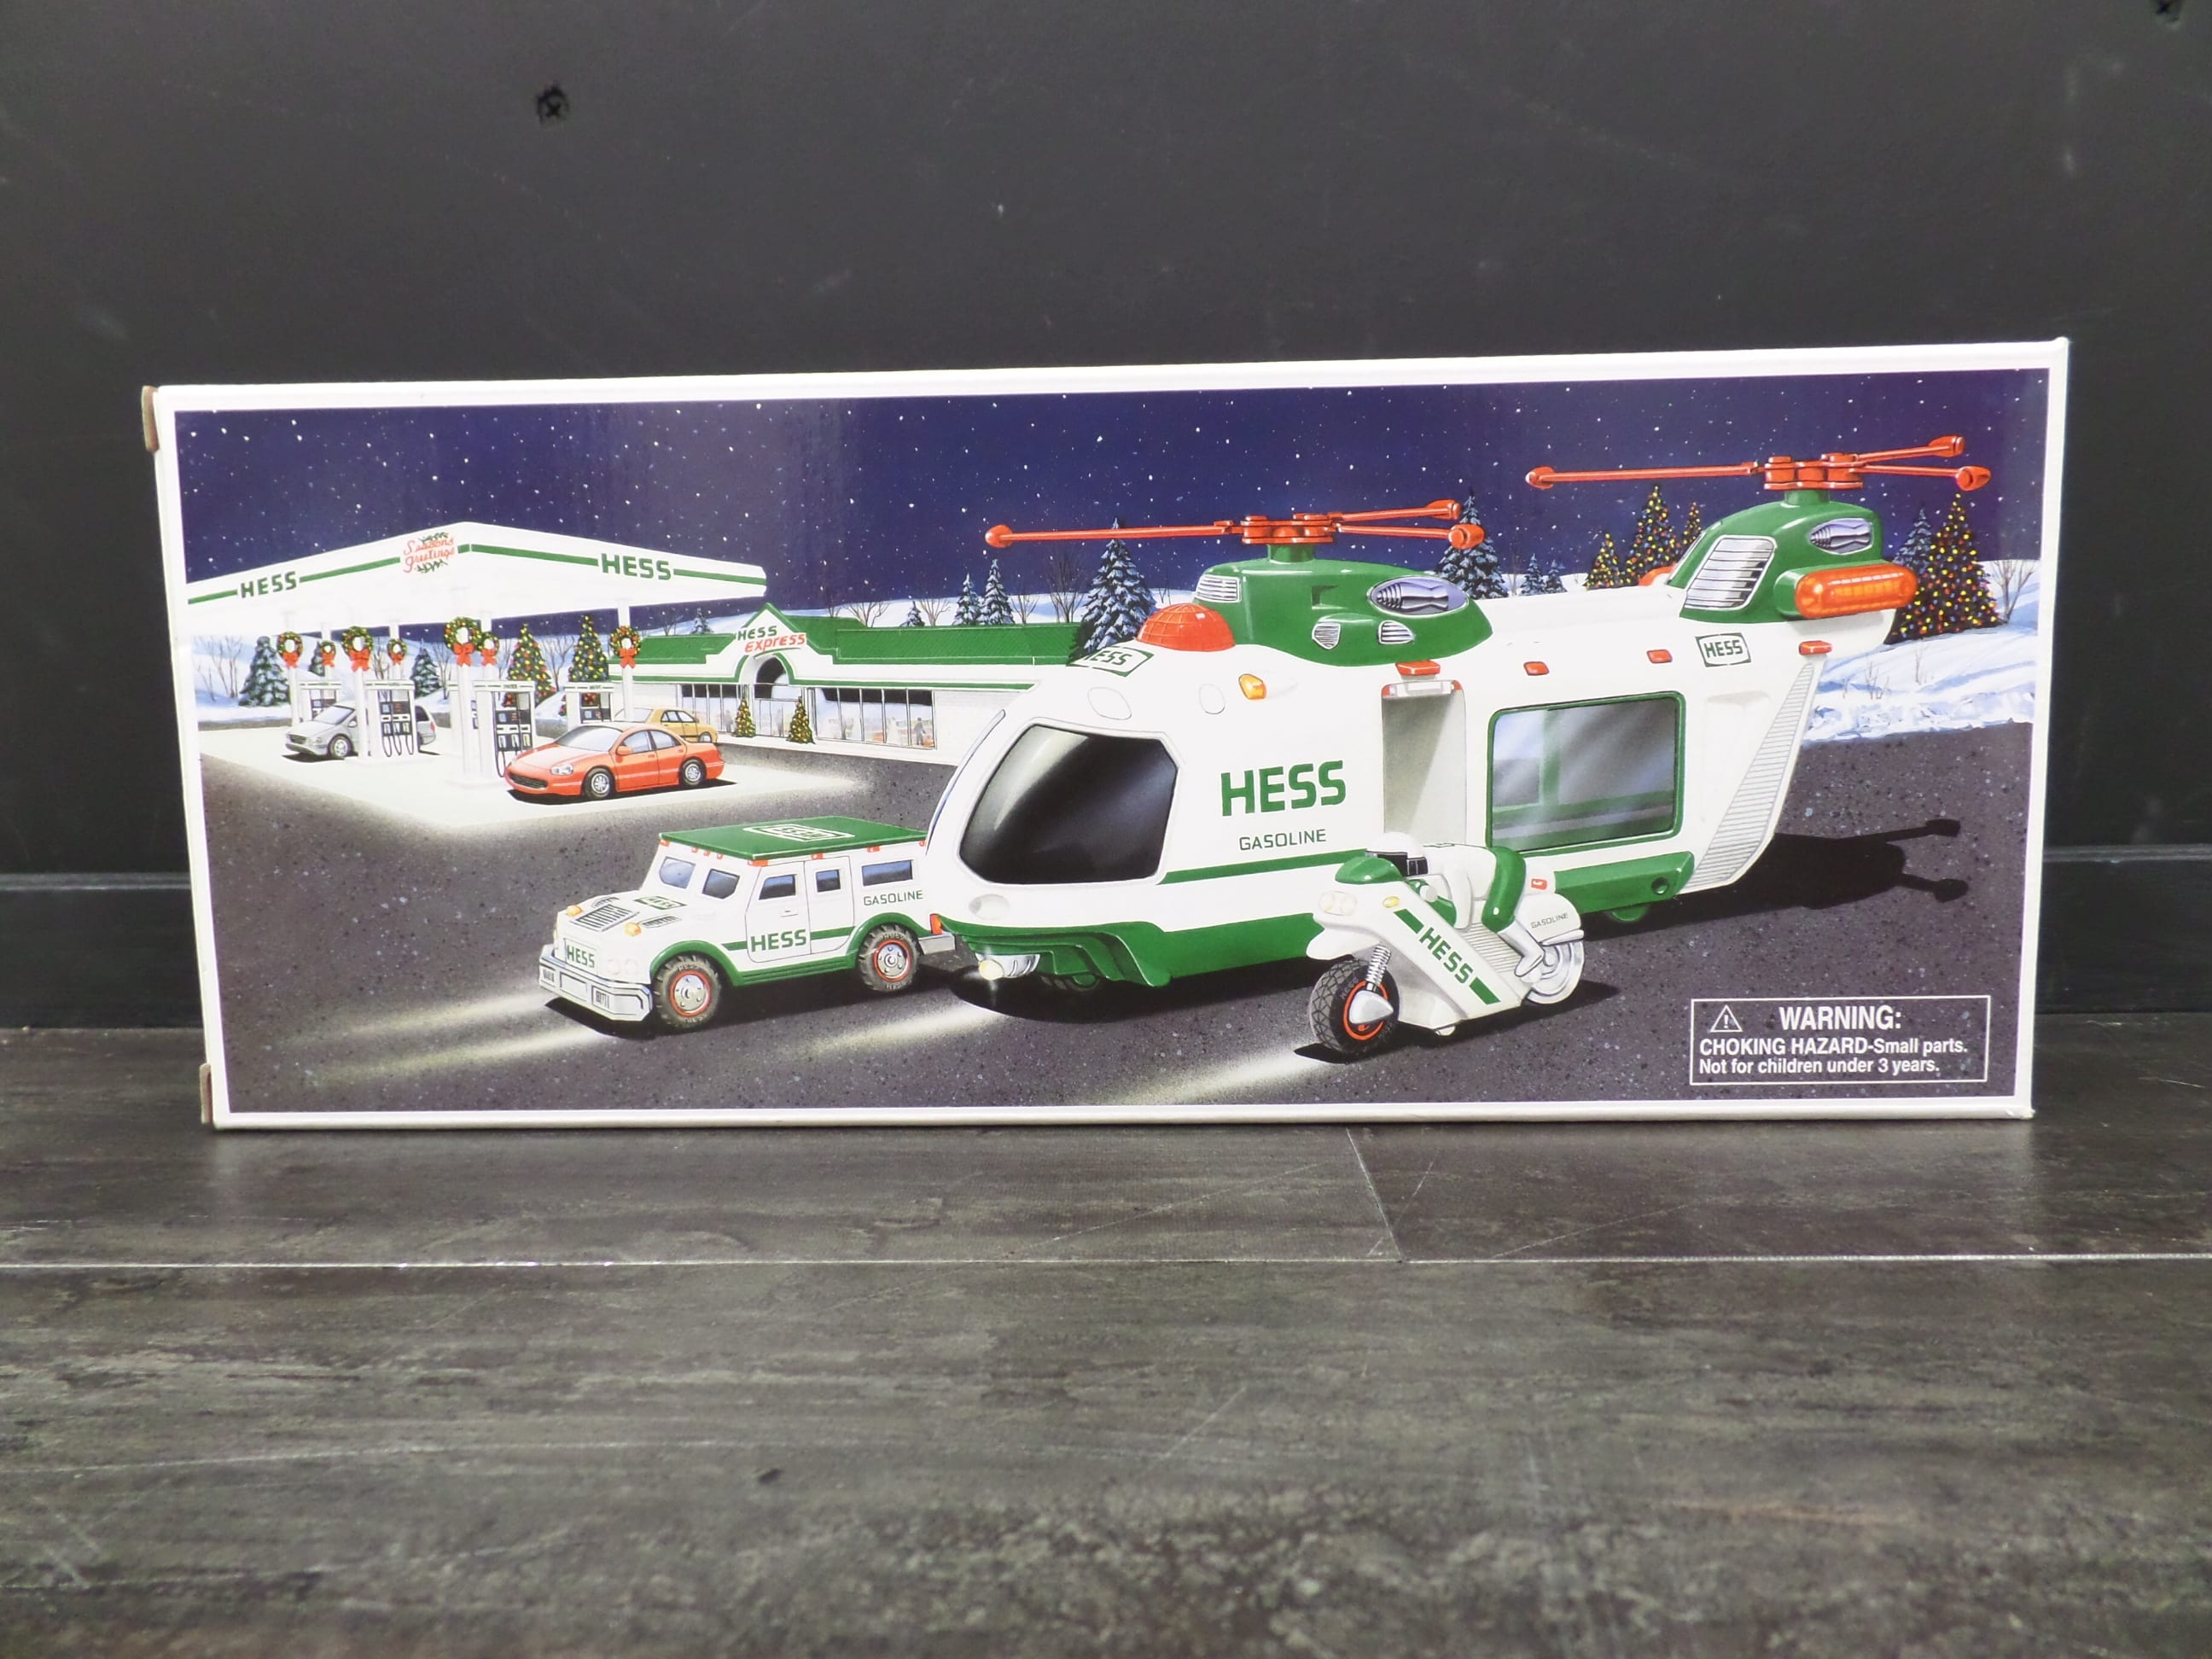 2001 HESS HELICOPTER <br/> Donated by:  WPBS SUPPORTER <br/> Valued at: $75